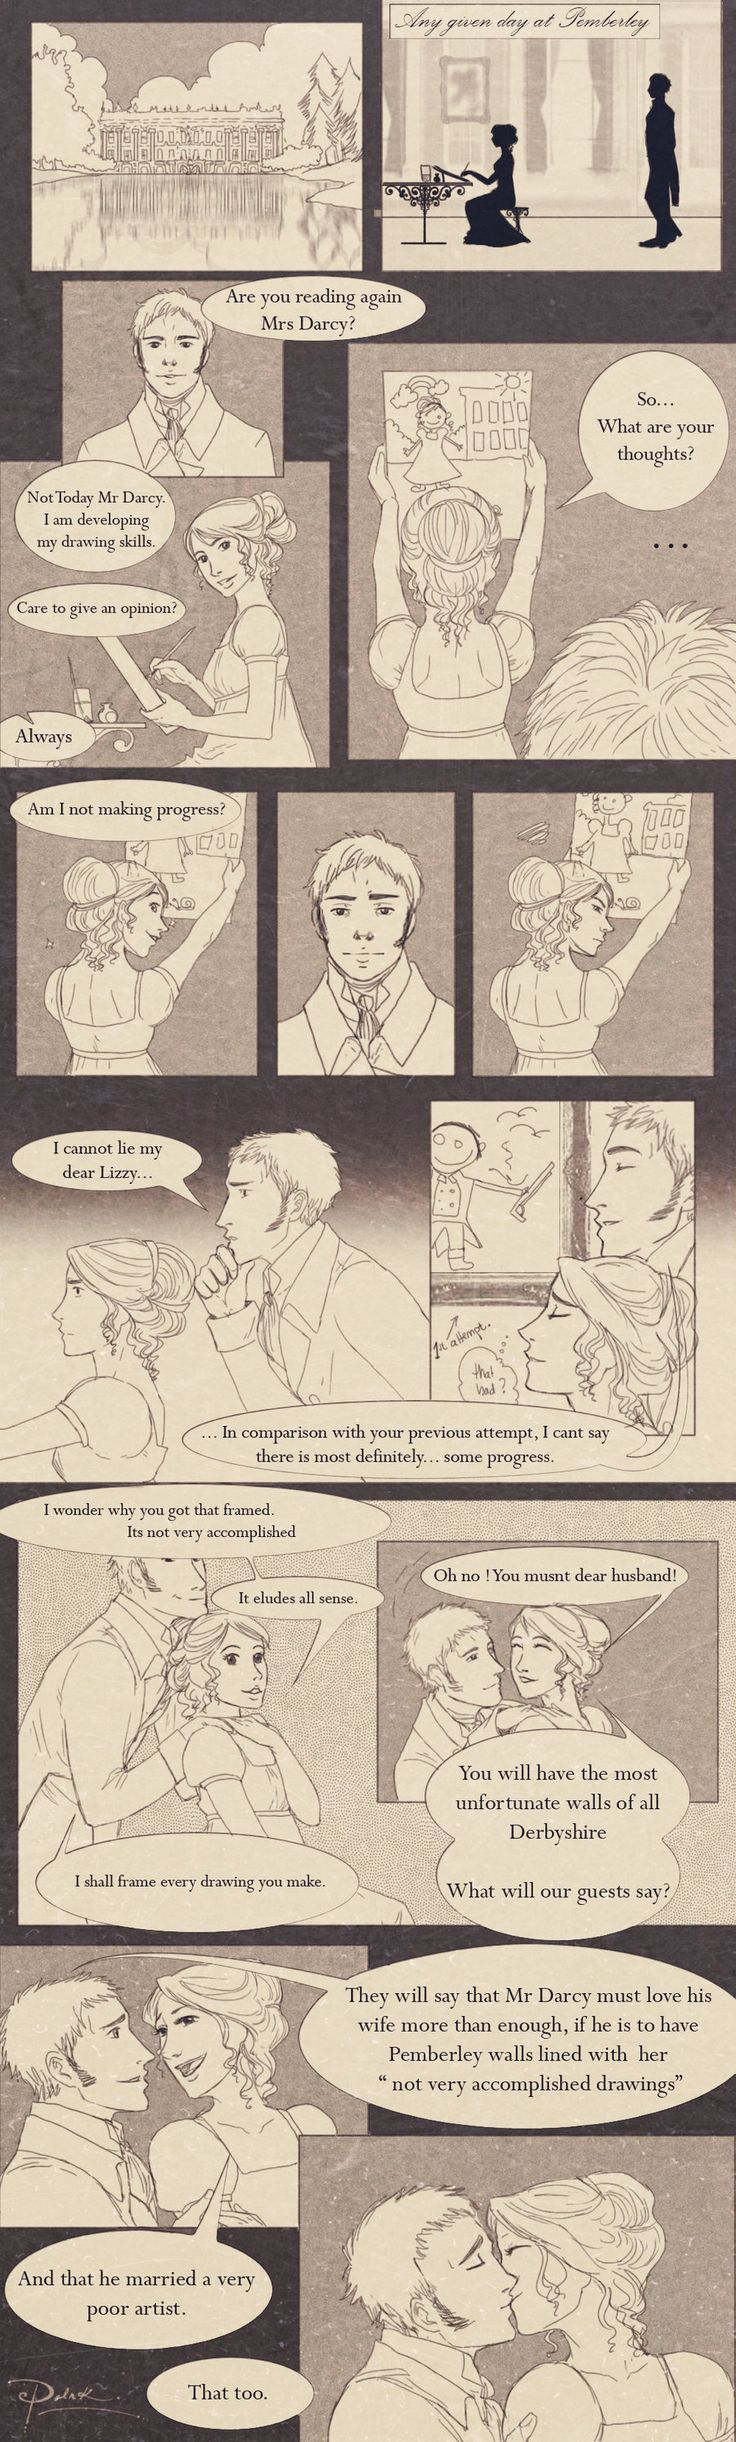 Lizzys Artistic Skills by palnk.deviantart.com on @deviantART. This is literally the cutest thing